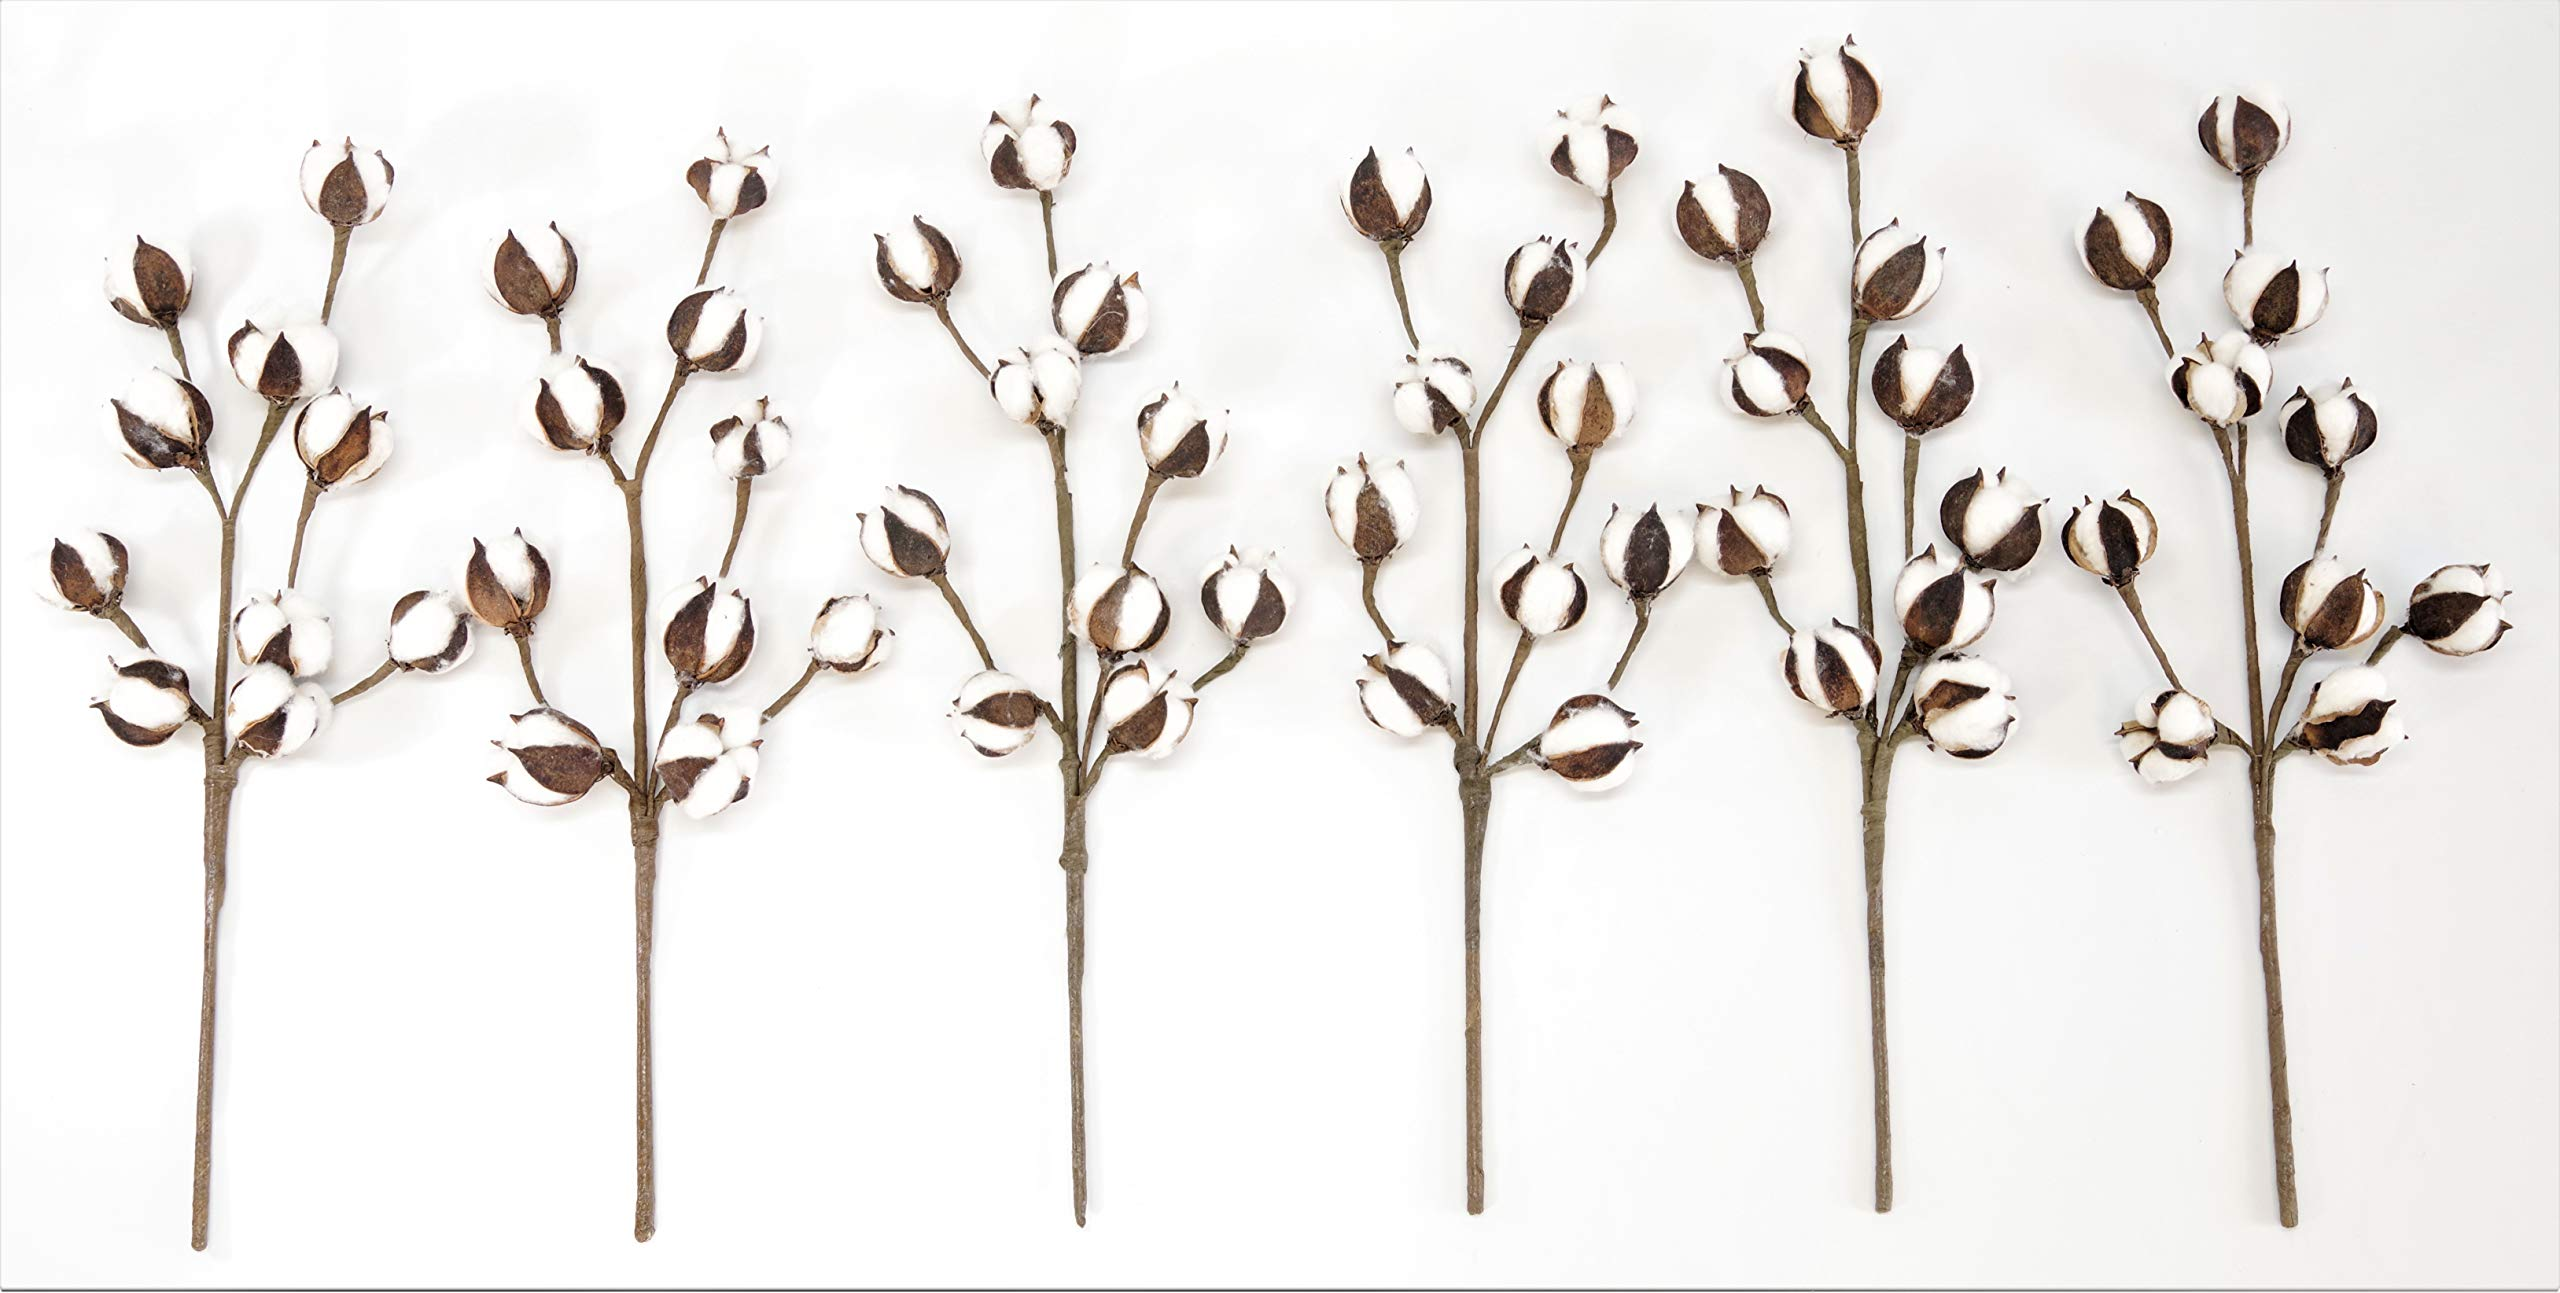 Silvercloud Trading Co. Cotton Stems - 6 Stems/Pack - 10 Cotton Buds/Stem - 20'' Tall - Farmhouse Style Floral Display Filler - Wedding Centerpiece